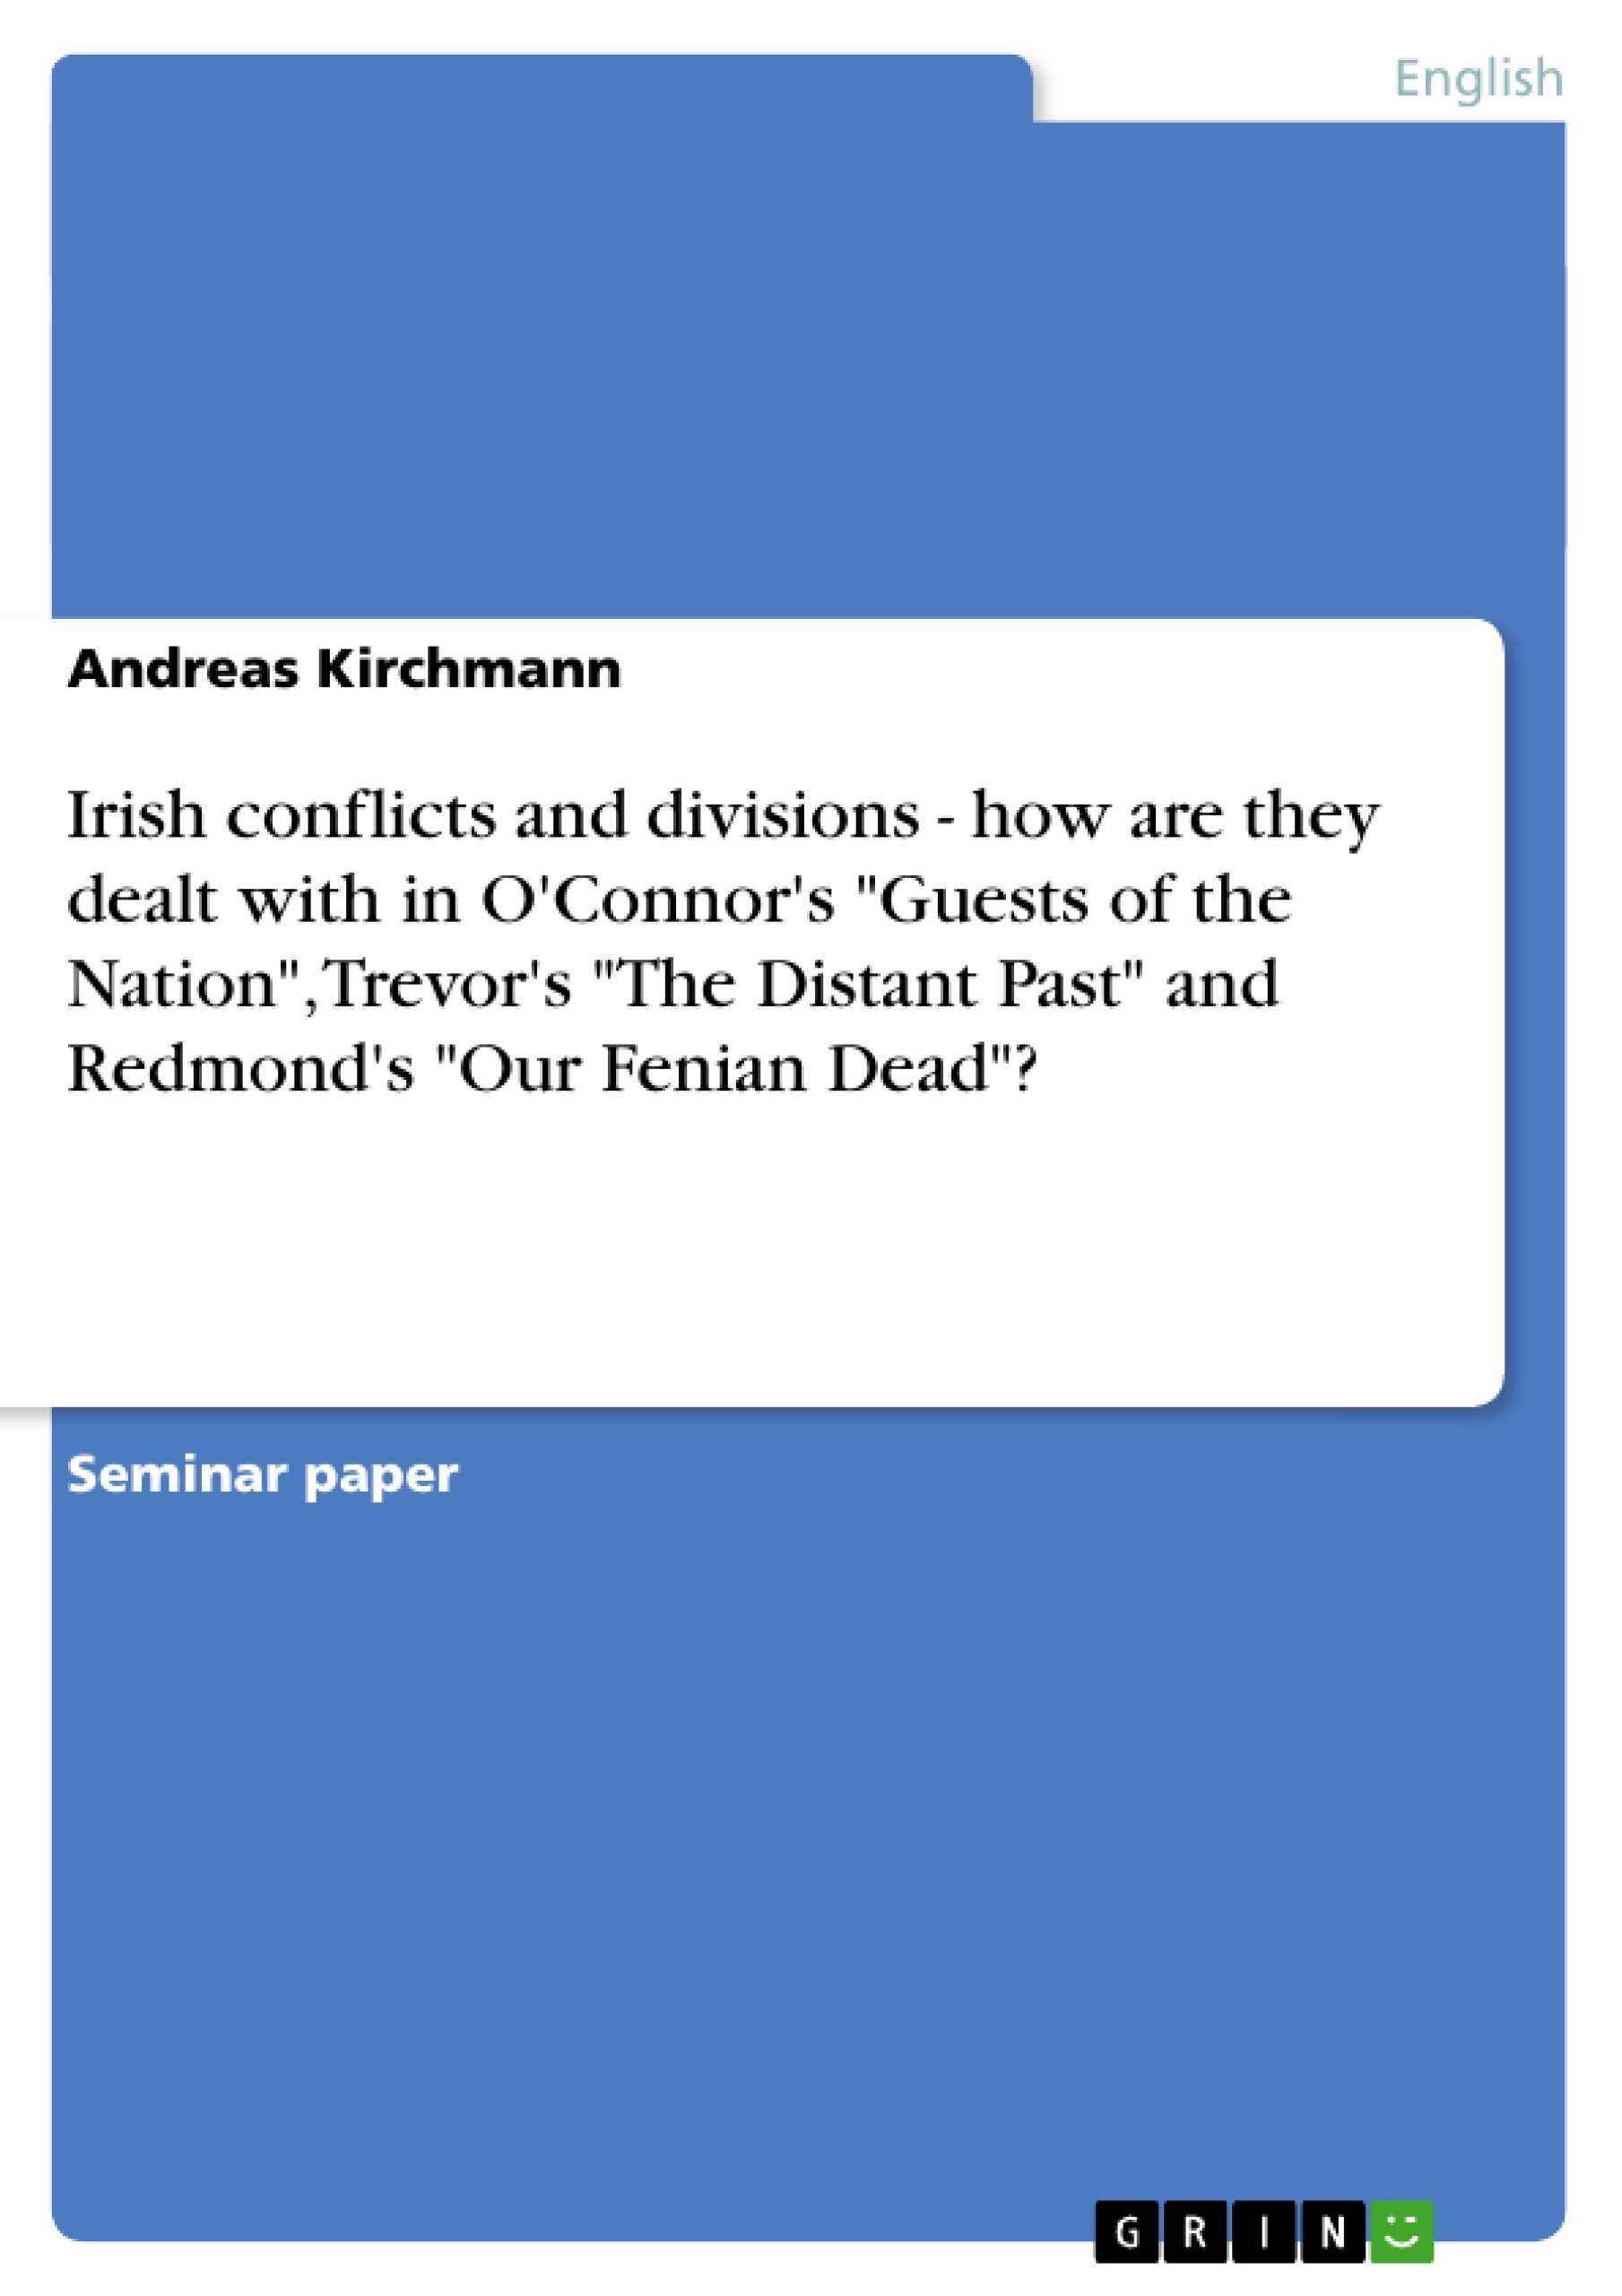 """Title: Irish conflicts and divisions - how are they dealt with in O'Connor's """"Guests of the Nation"""", Trevor's """"The Distant Past"""" and Redmond's """"Our Fenian Dead""""?"""